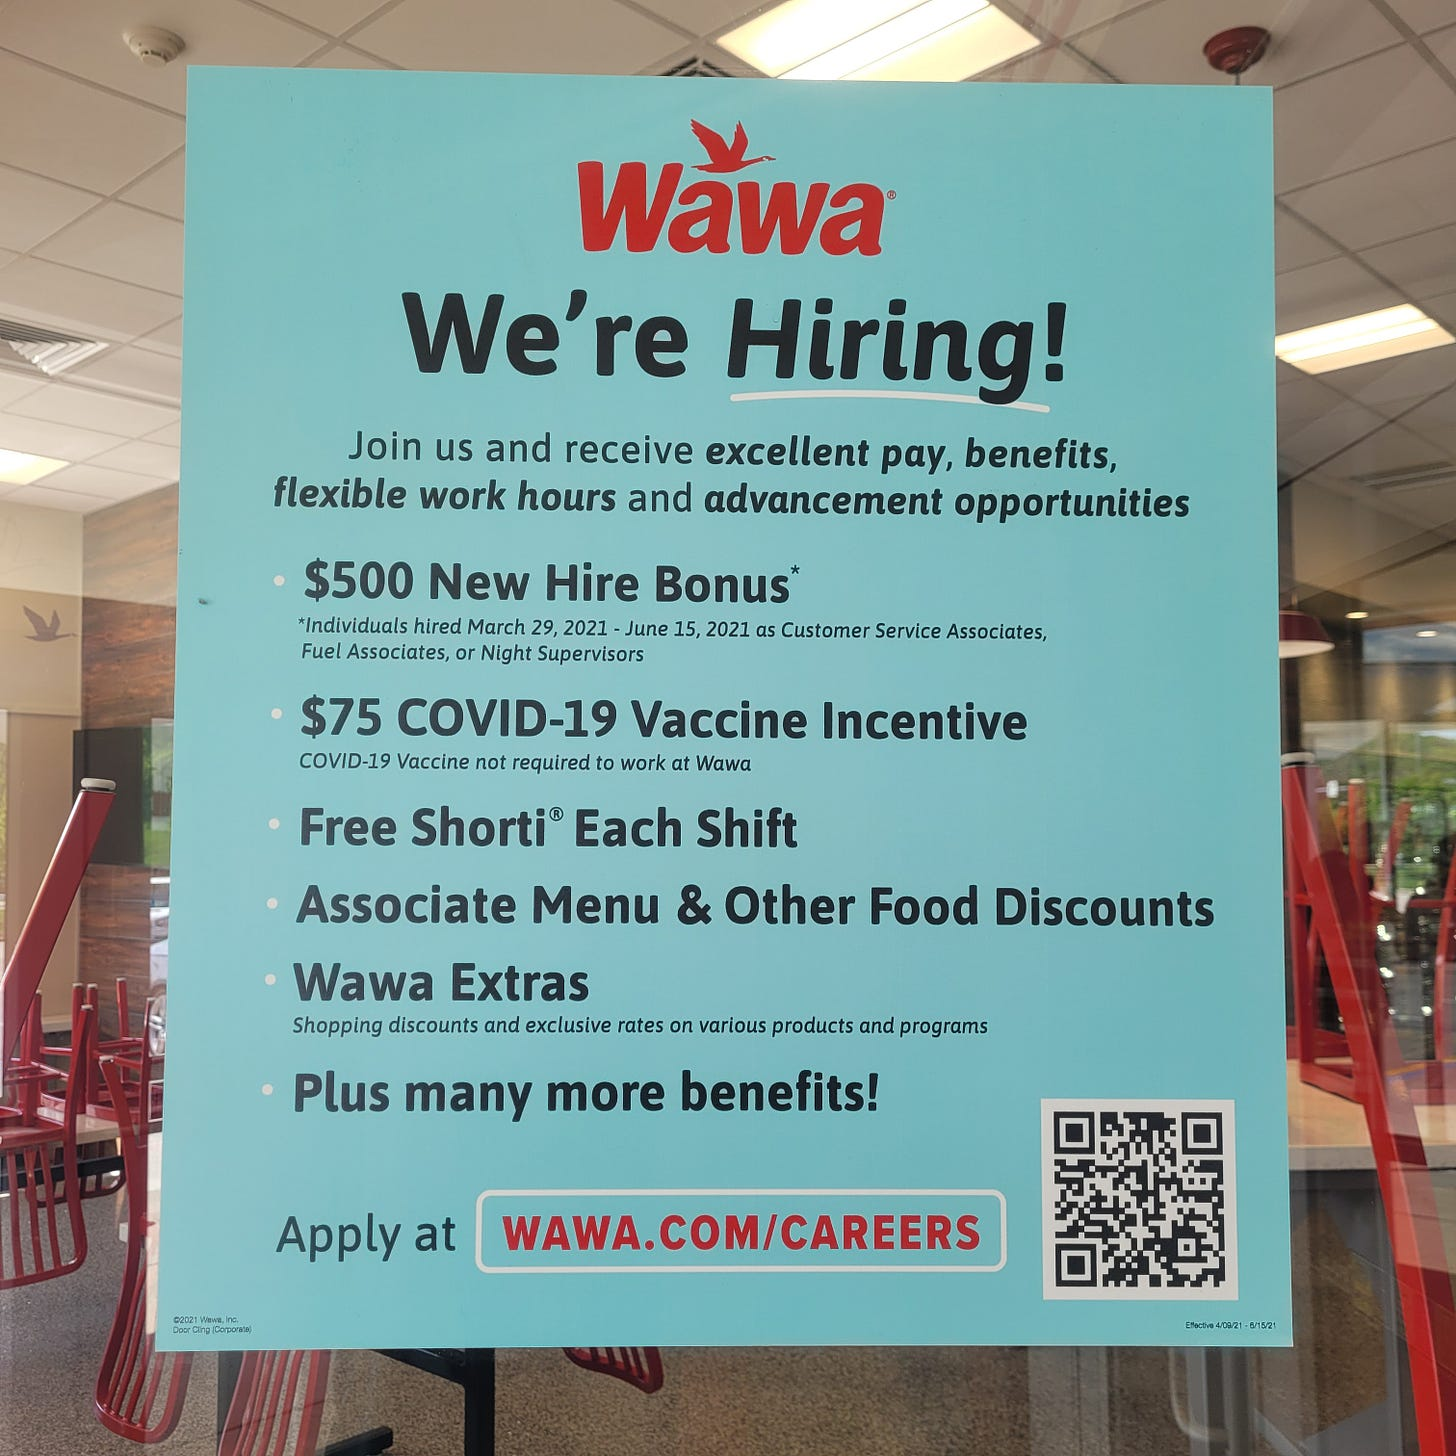 A sign at Wawa announcing the perks of working there, including a $500 hiring bonus, vaccine incentive, employee meals, discounts, and more.